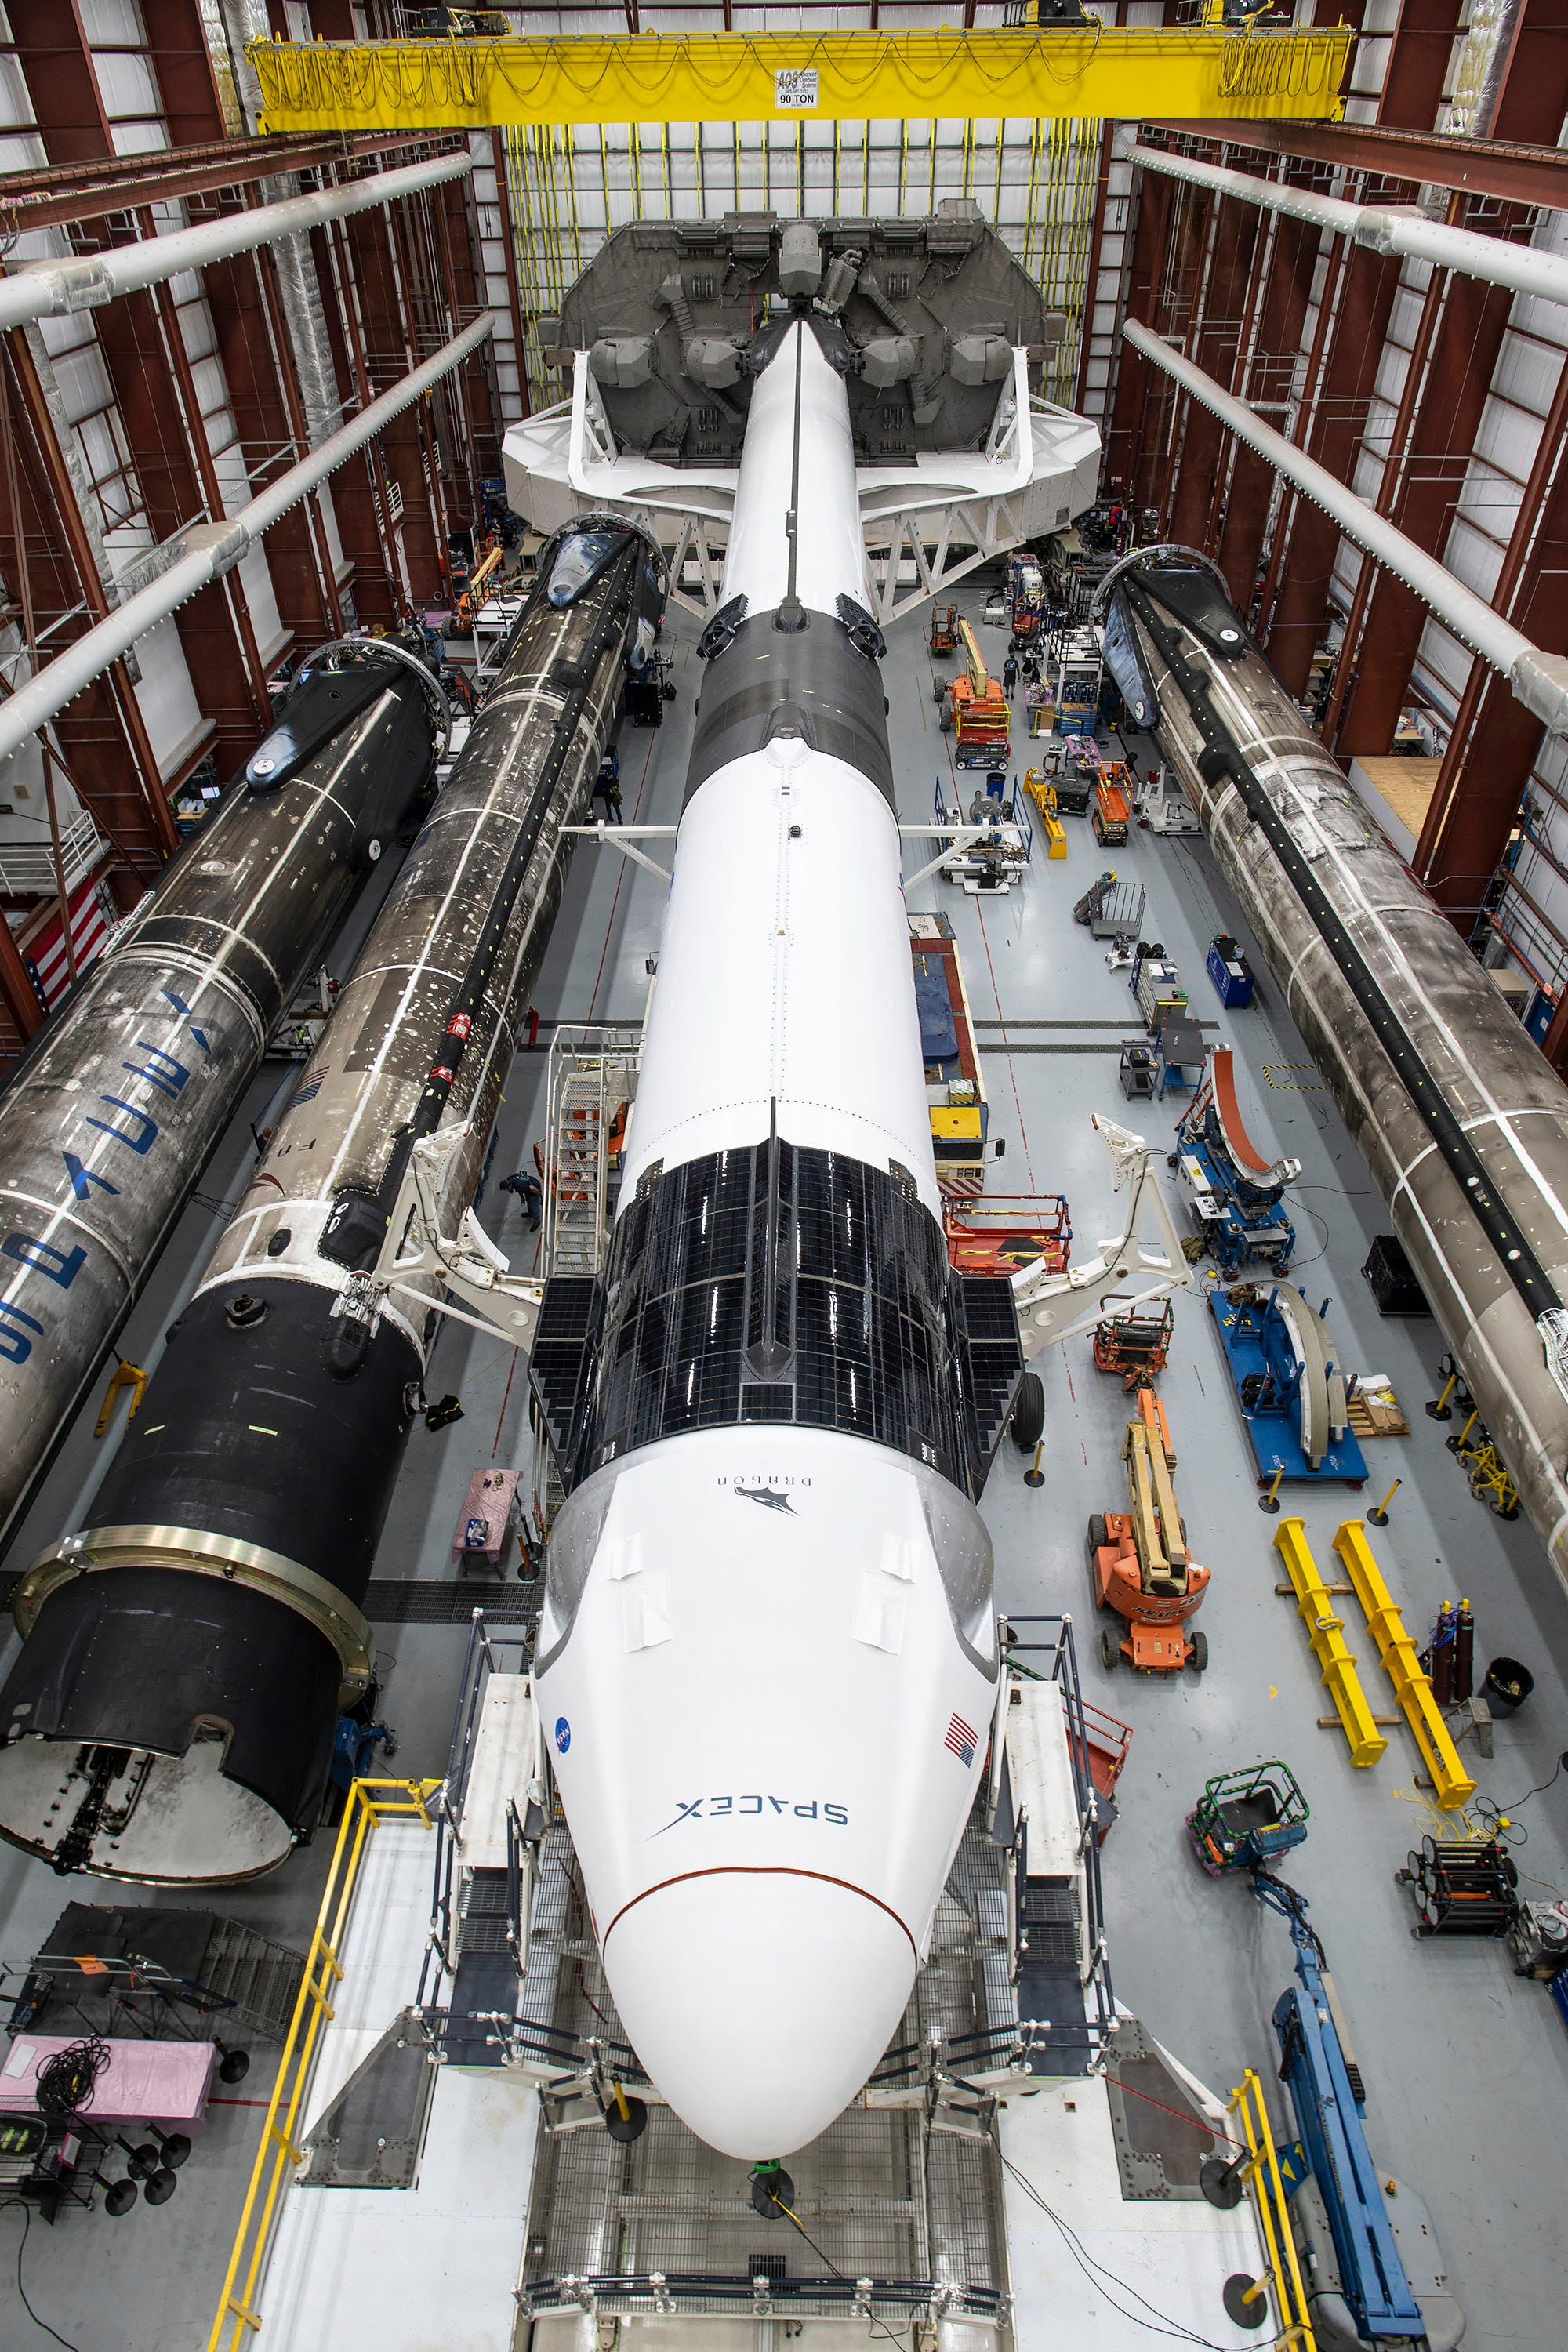 Crew Dragon Resilience and its Falcon 9 rocket, NASA's Kennedy Space Centre, November 9, 2020. (Spacex)